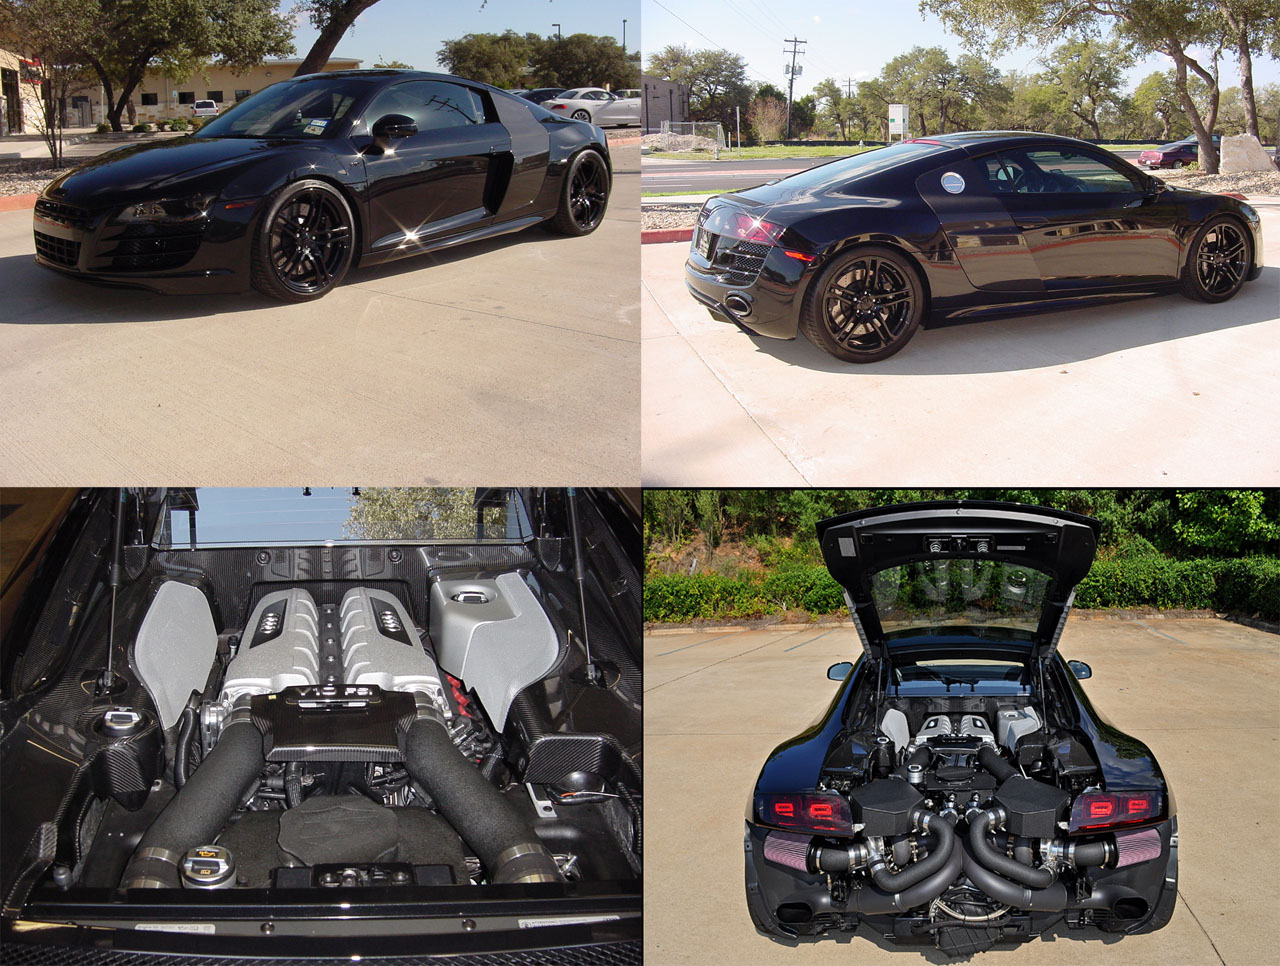 2010 Audi R8 V10 Twin Turbo Underground Racing UGR